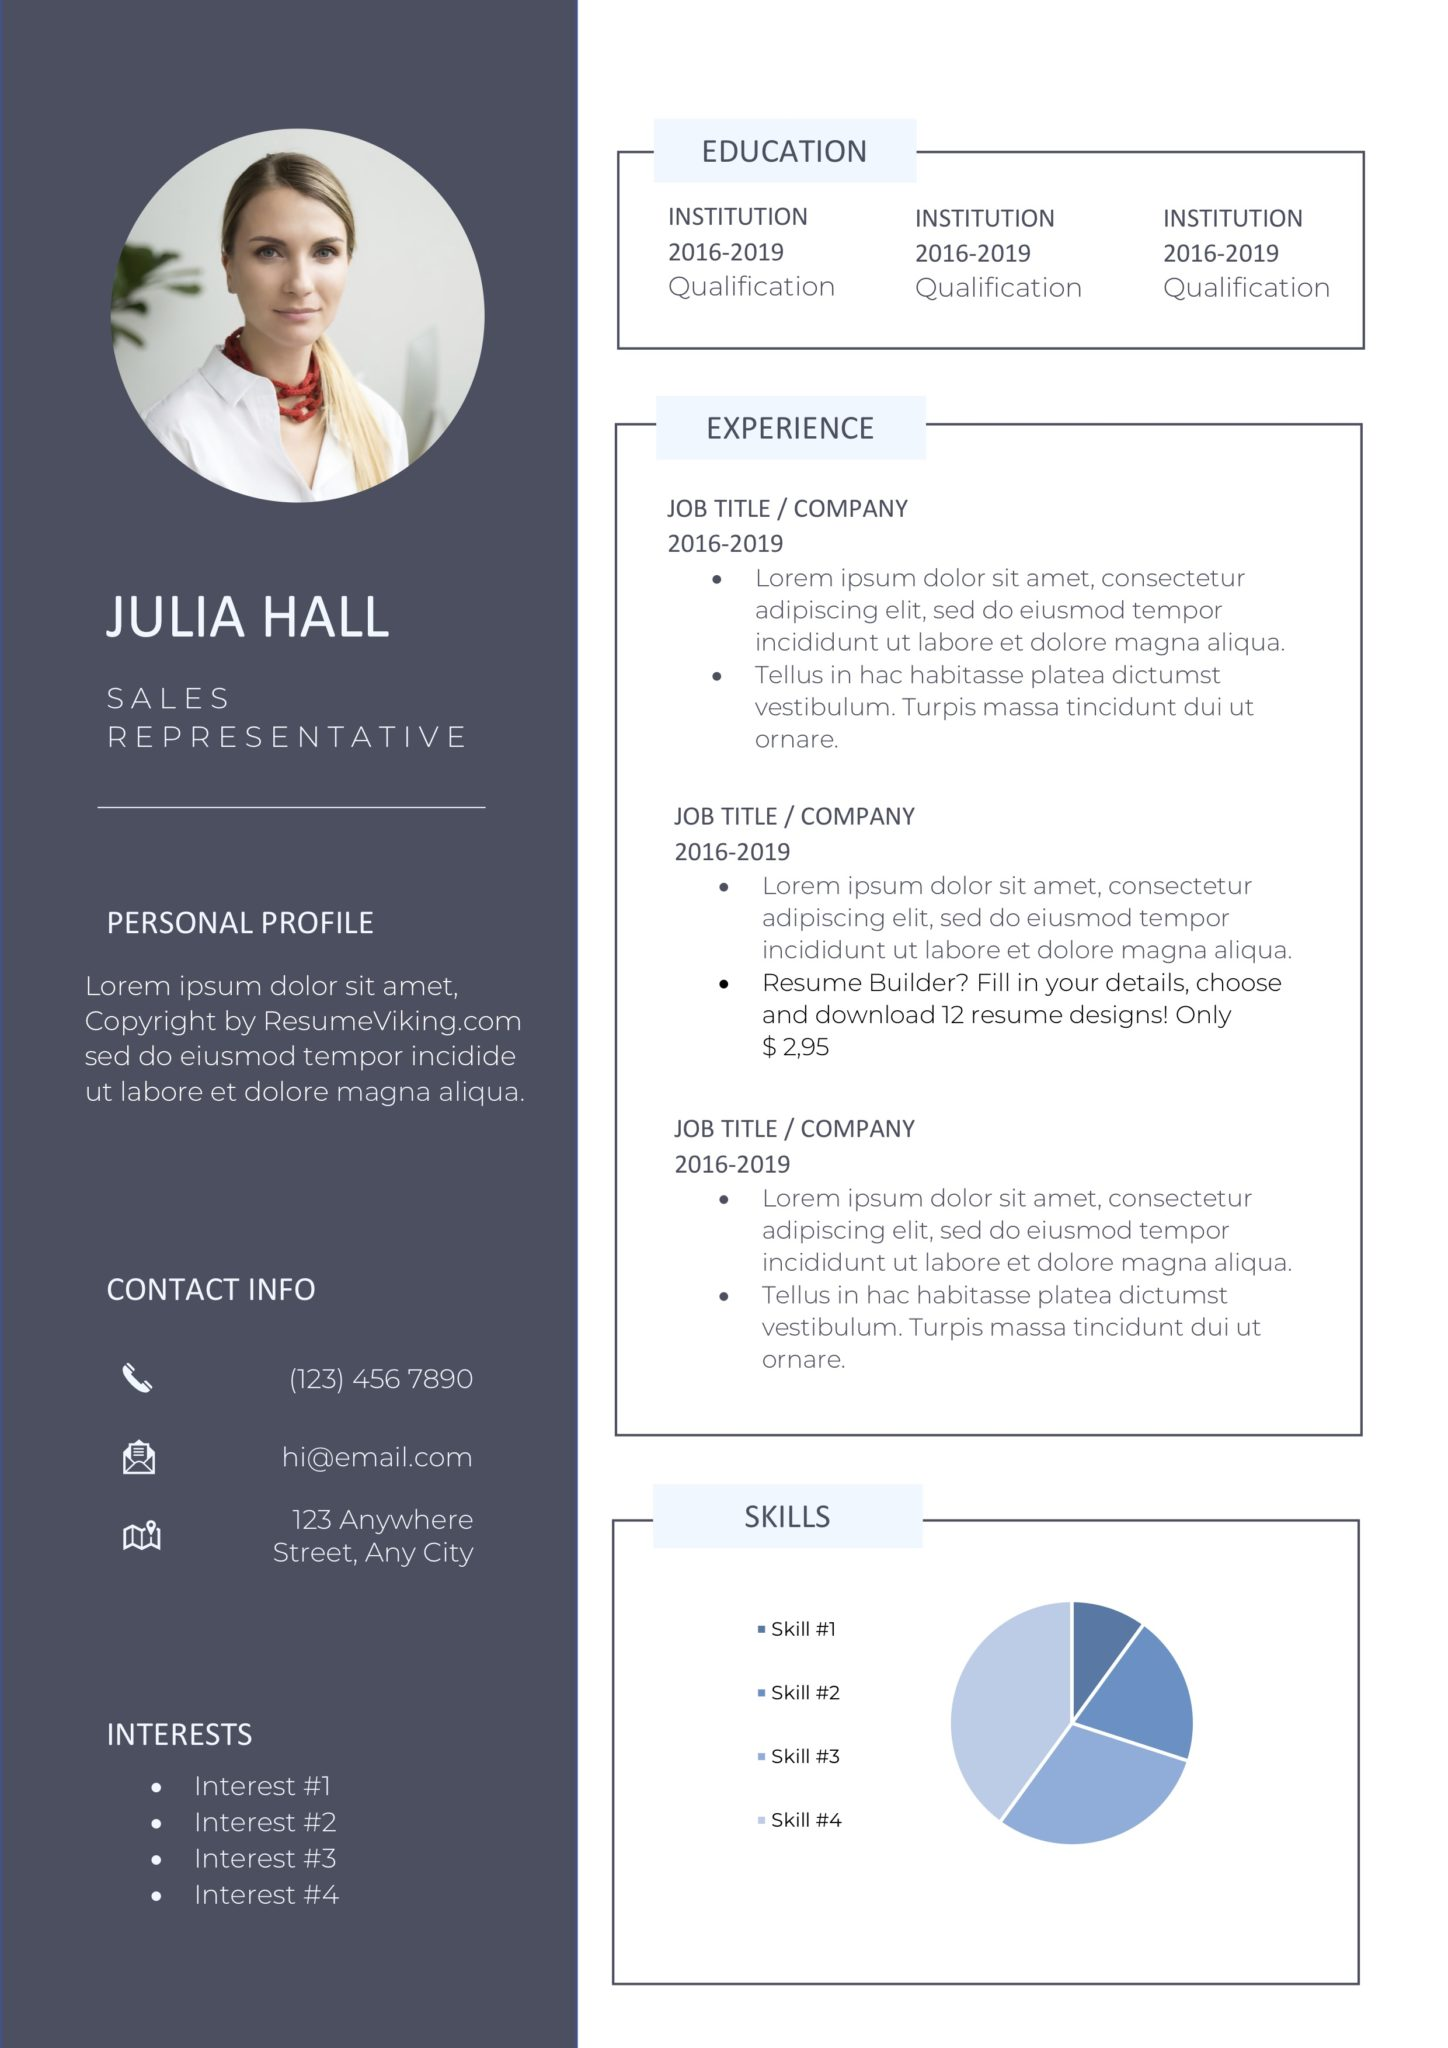 free word resume templates in ms microsoft office template resumeviking scaled food Resume Microsoft Office Resume Templates 2020